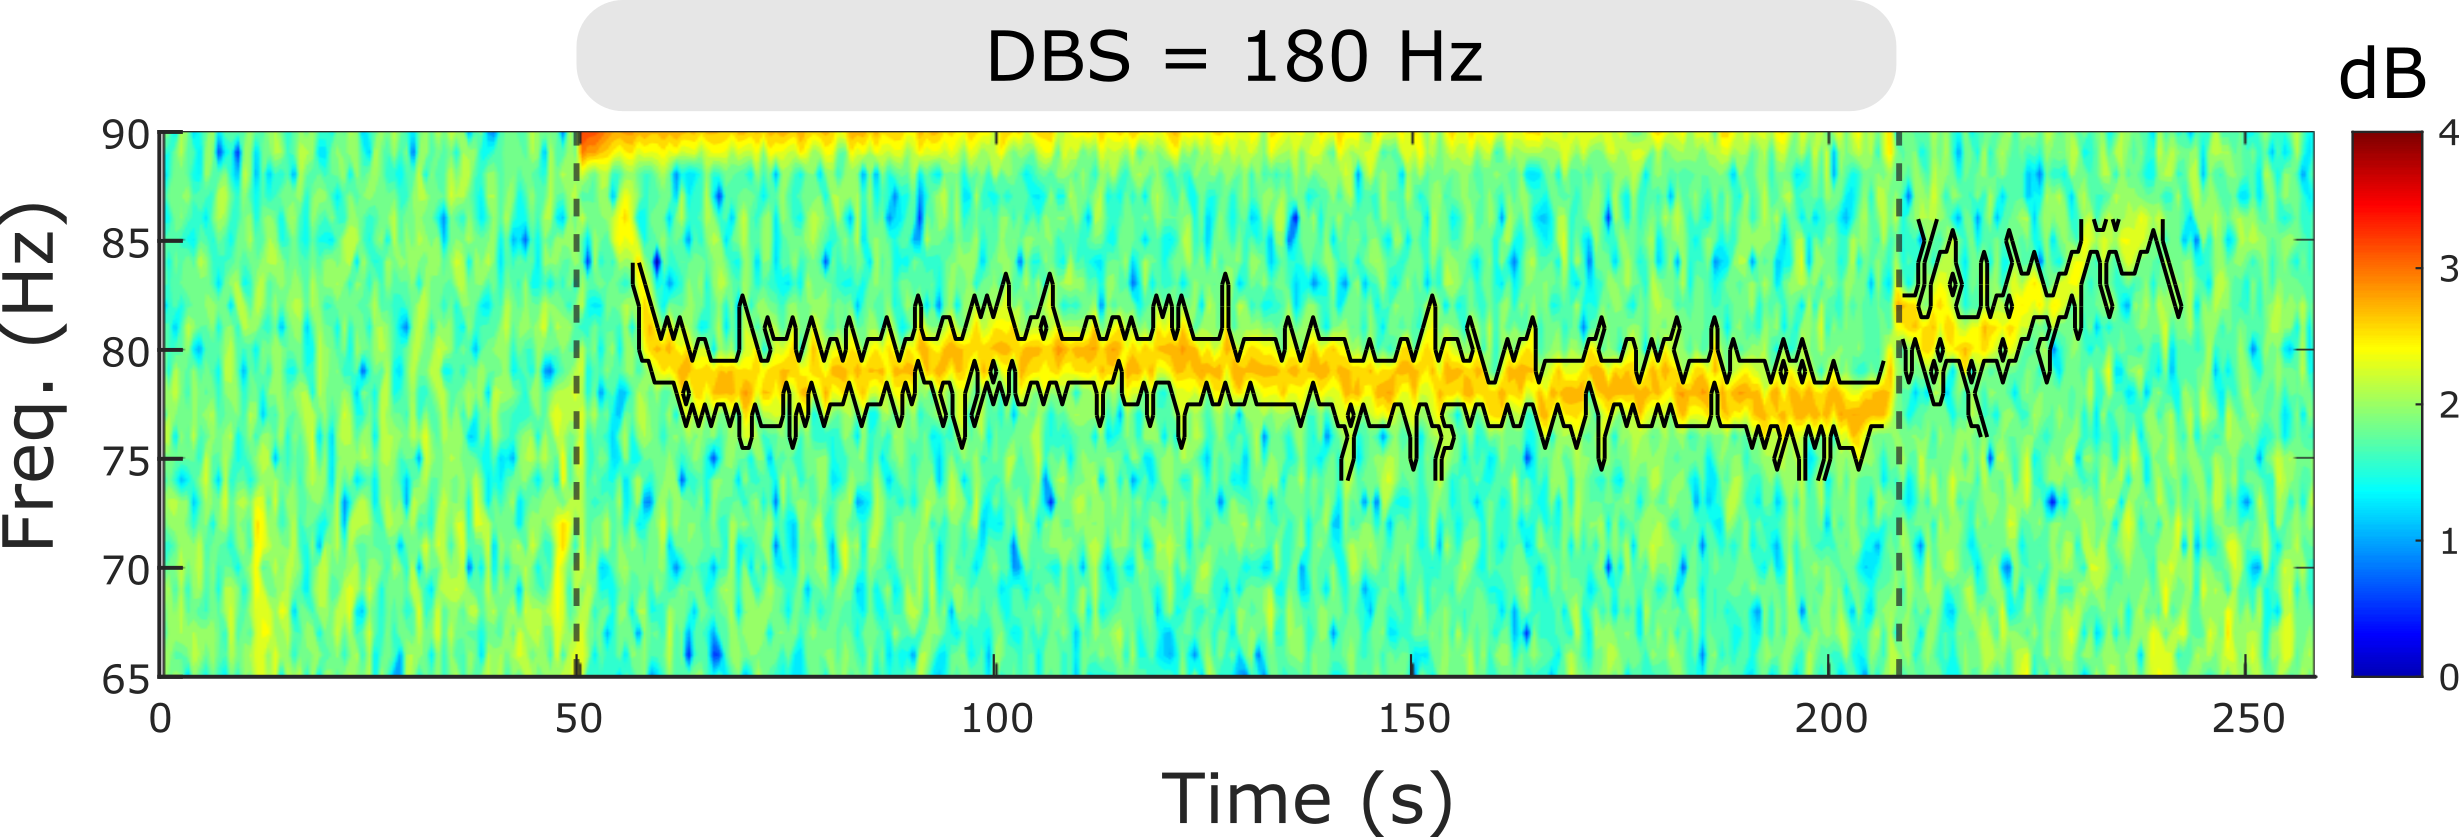 Spectrogram of nerve cell activity recorded in human brain.